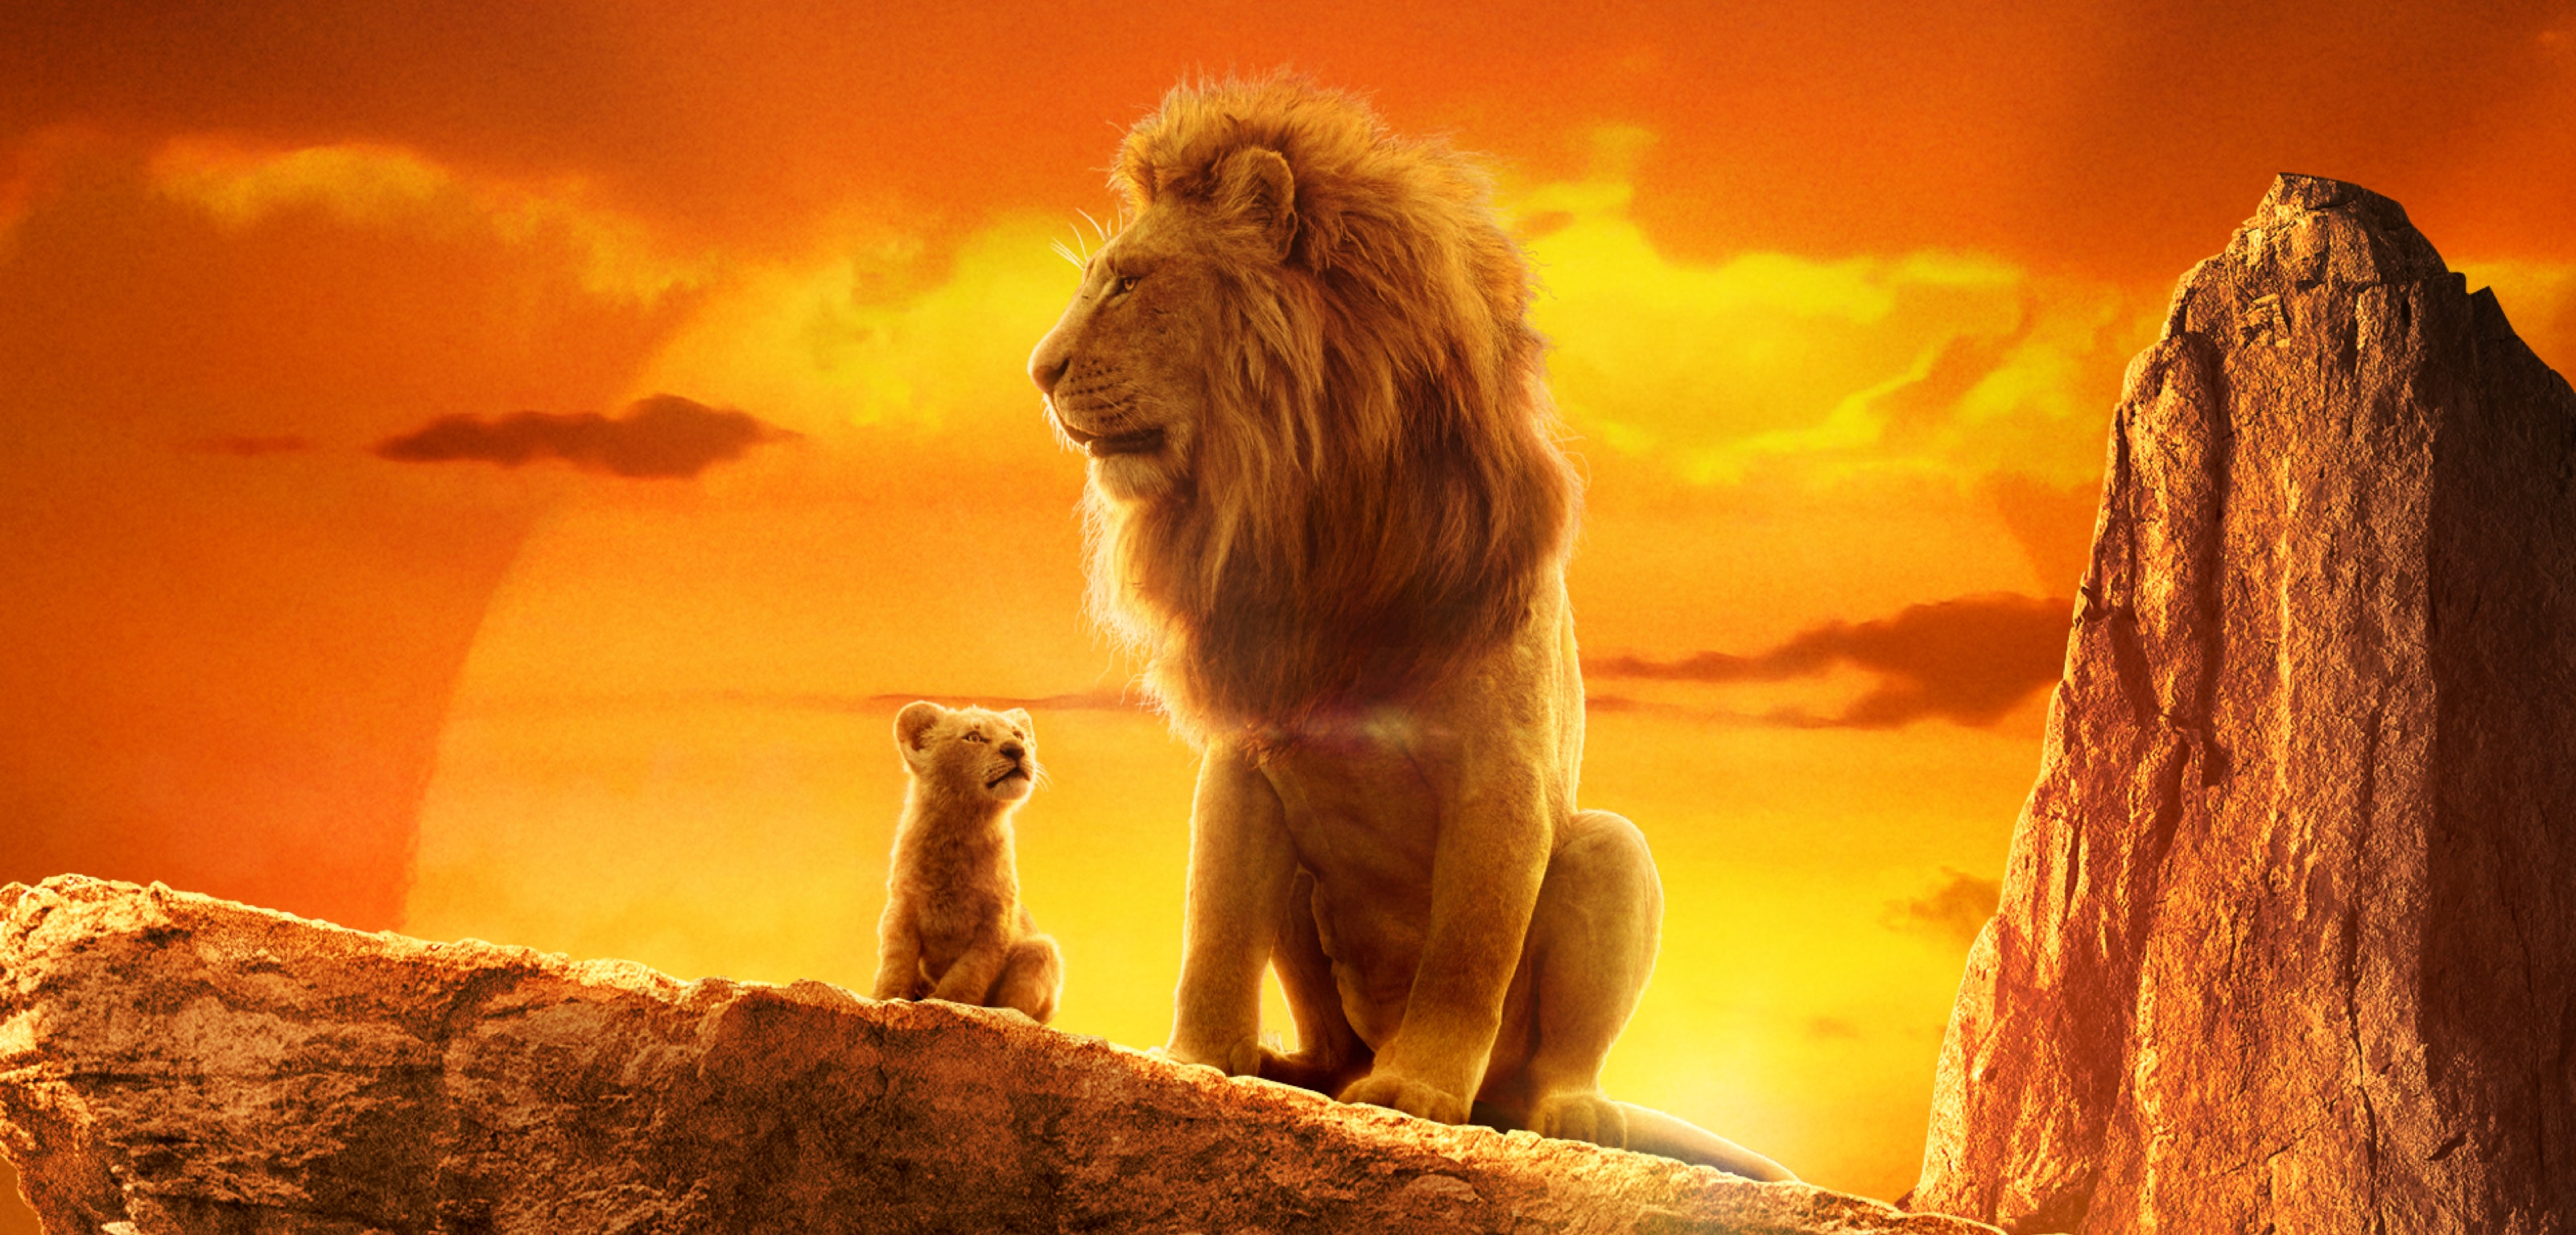 A still image from The Lion King (2019)